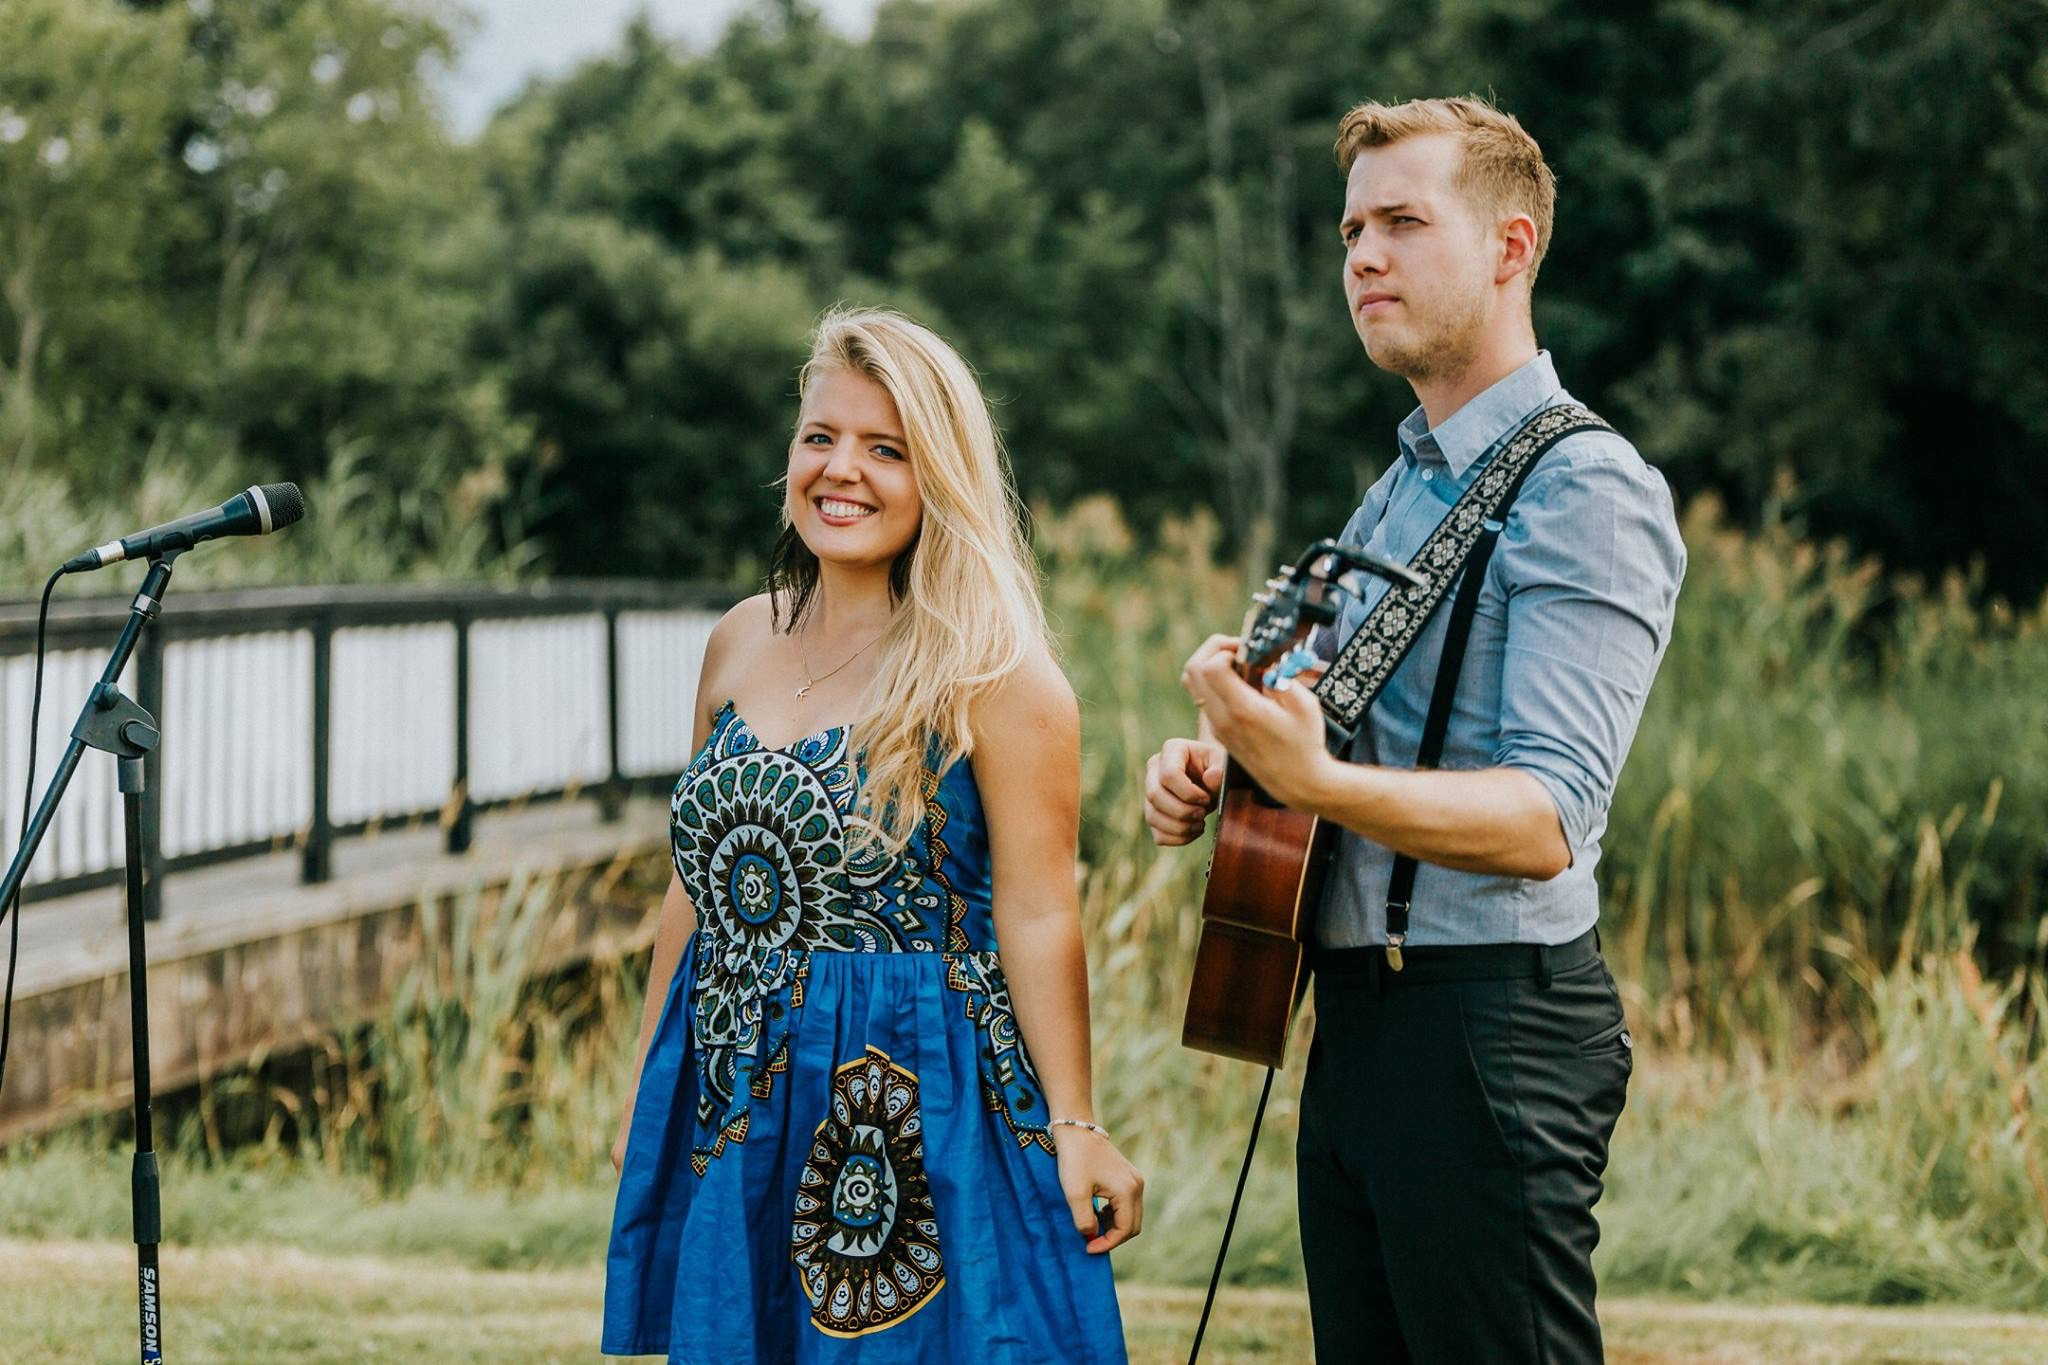 Live Music: DUO